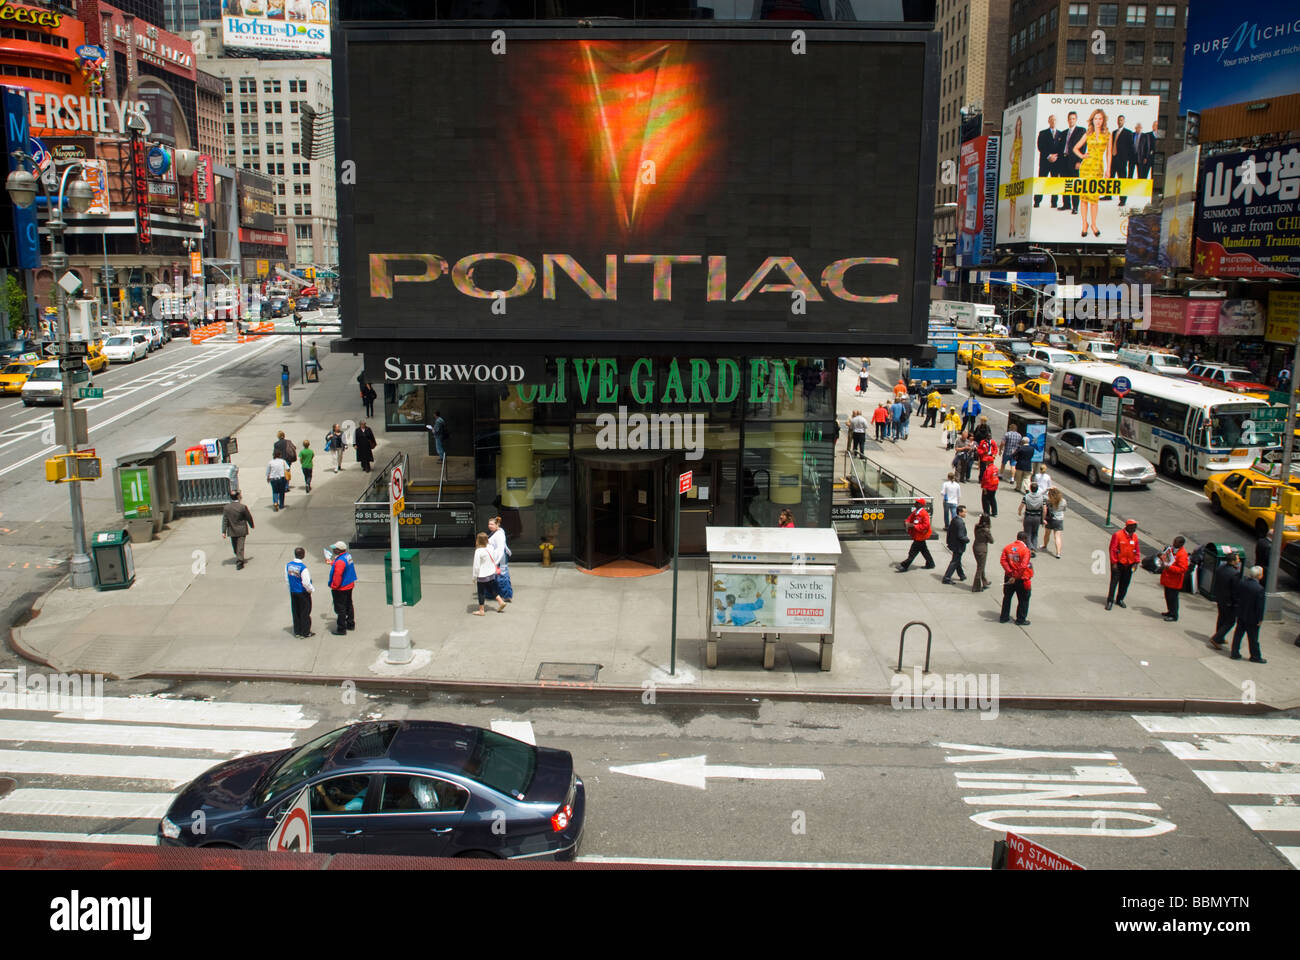 Advertising for General Motors Pontiac brand is seen in Times Square - Stock Image